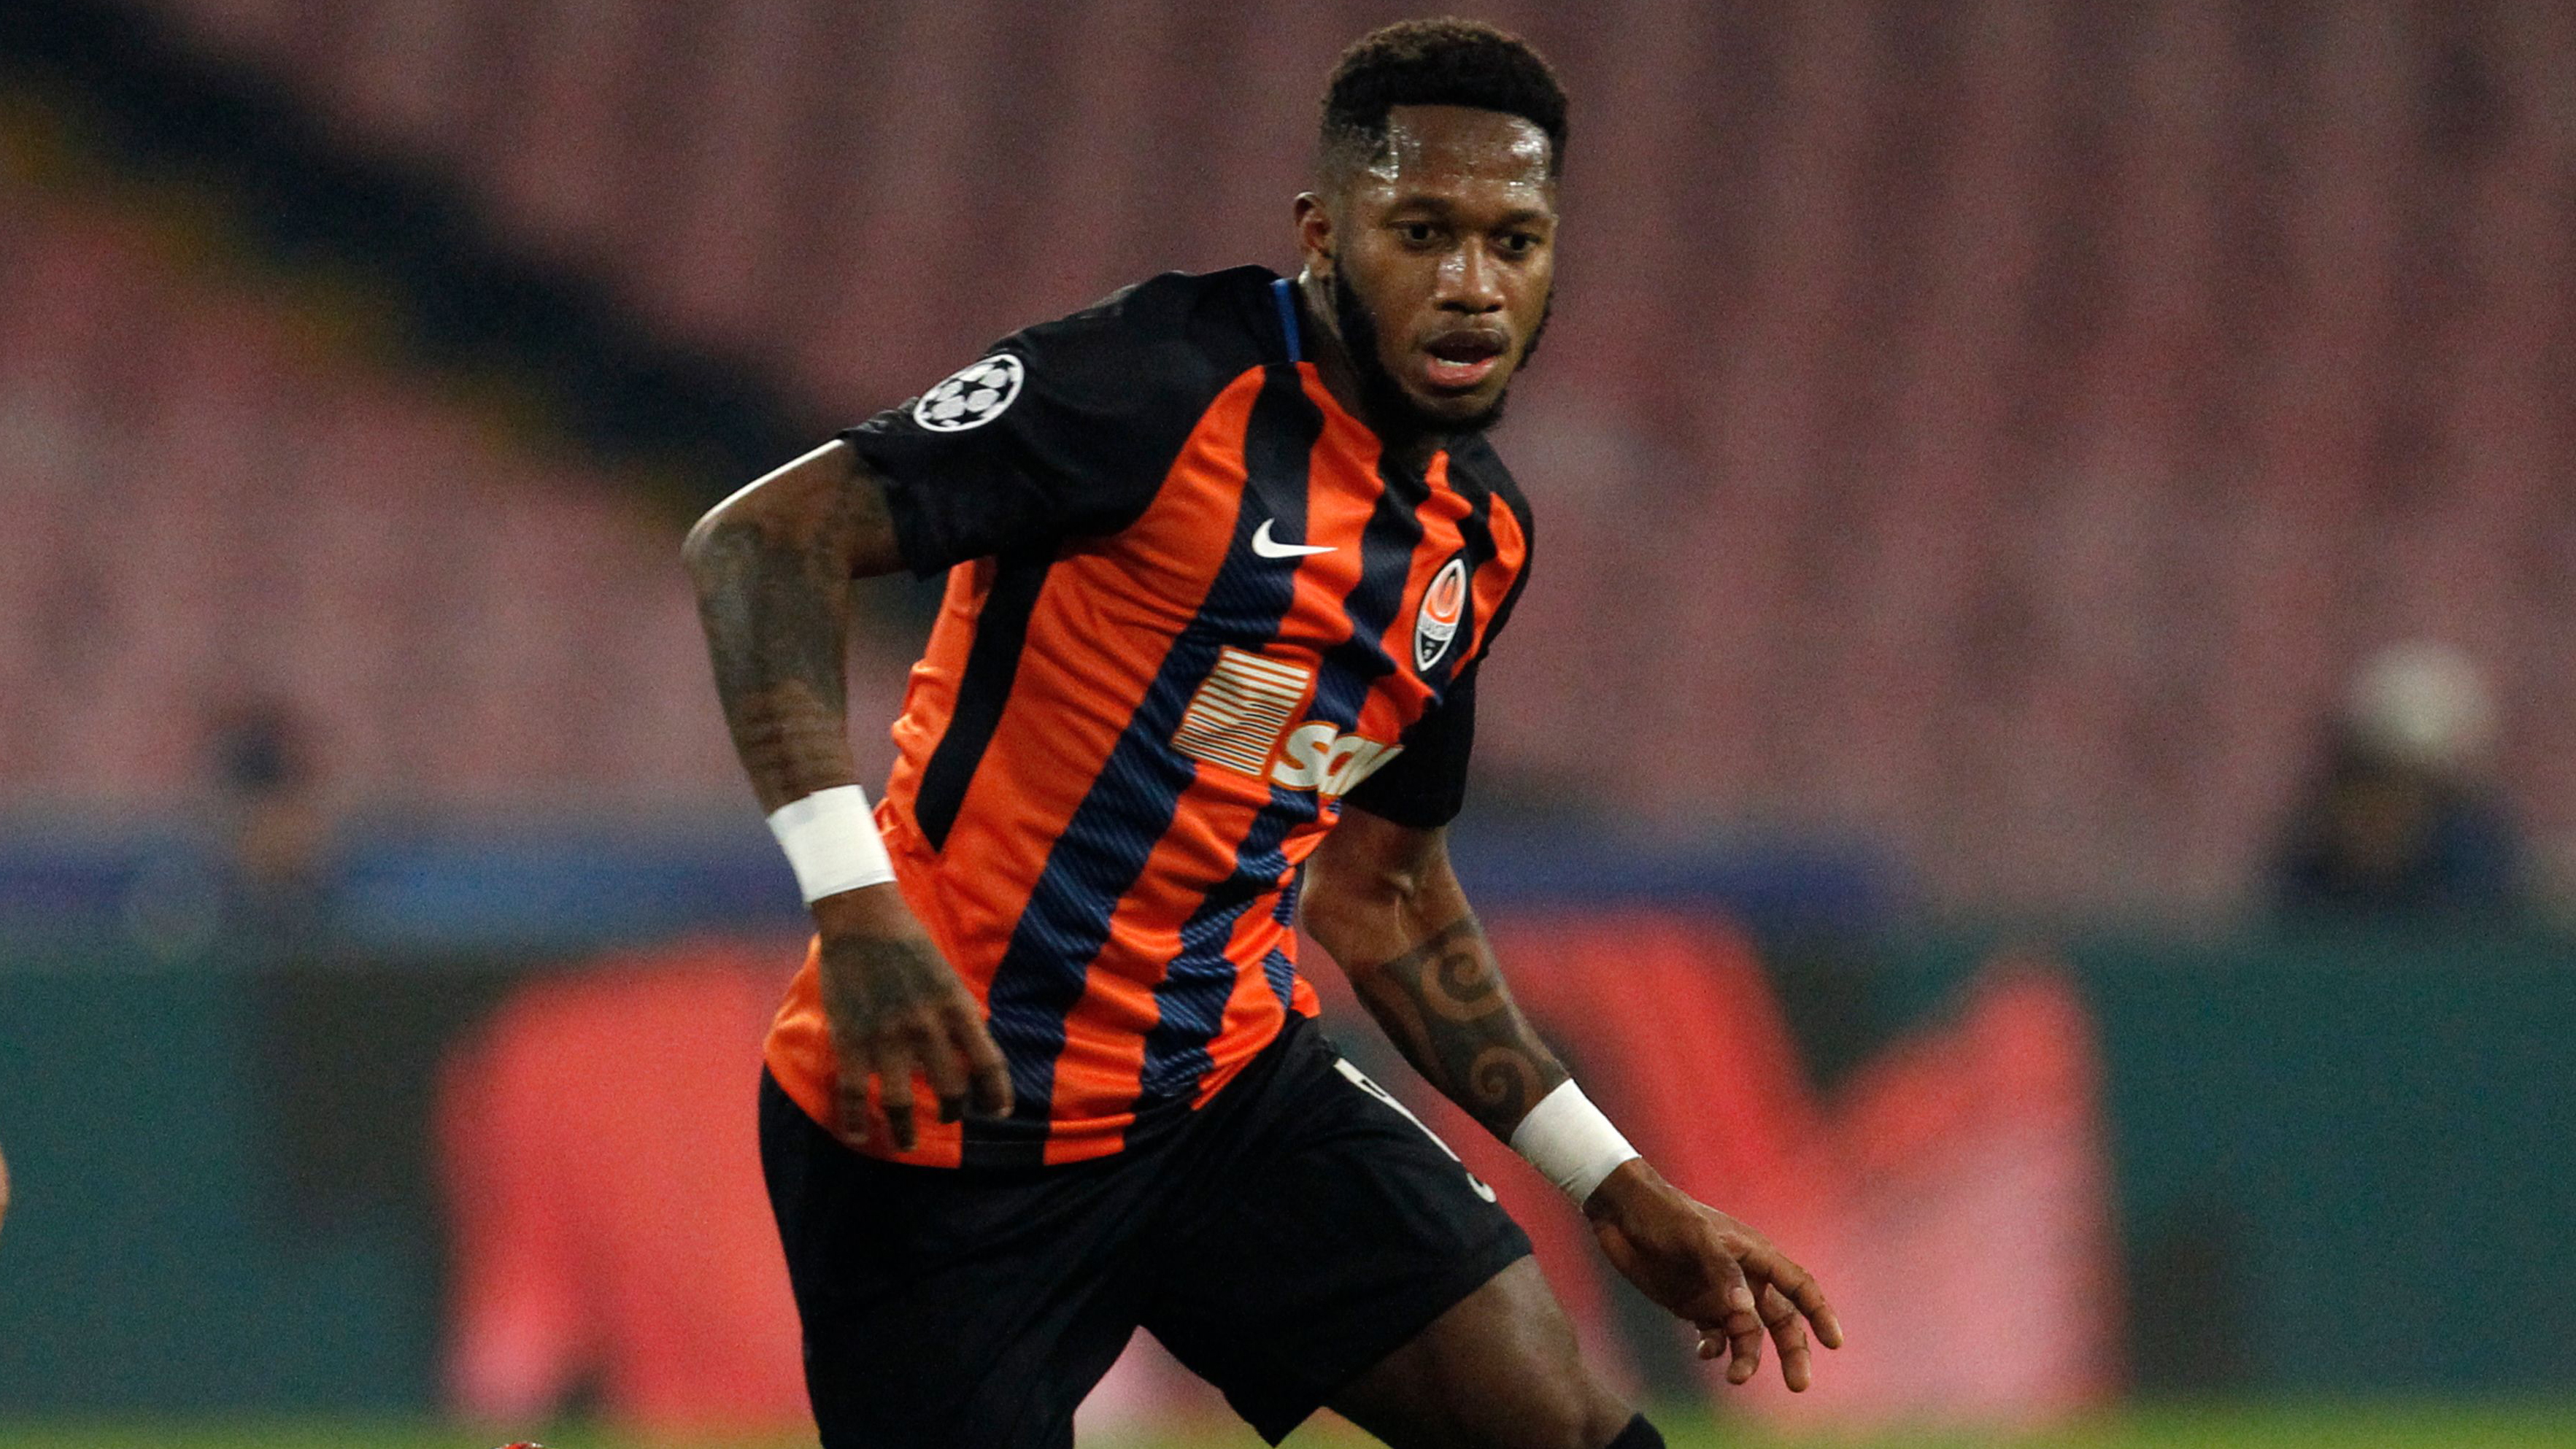 Man United, Fred a Carrington per le visite: costerà 60 milioni